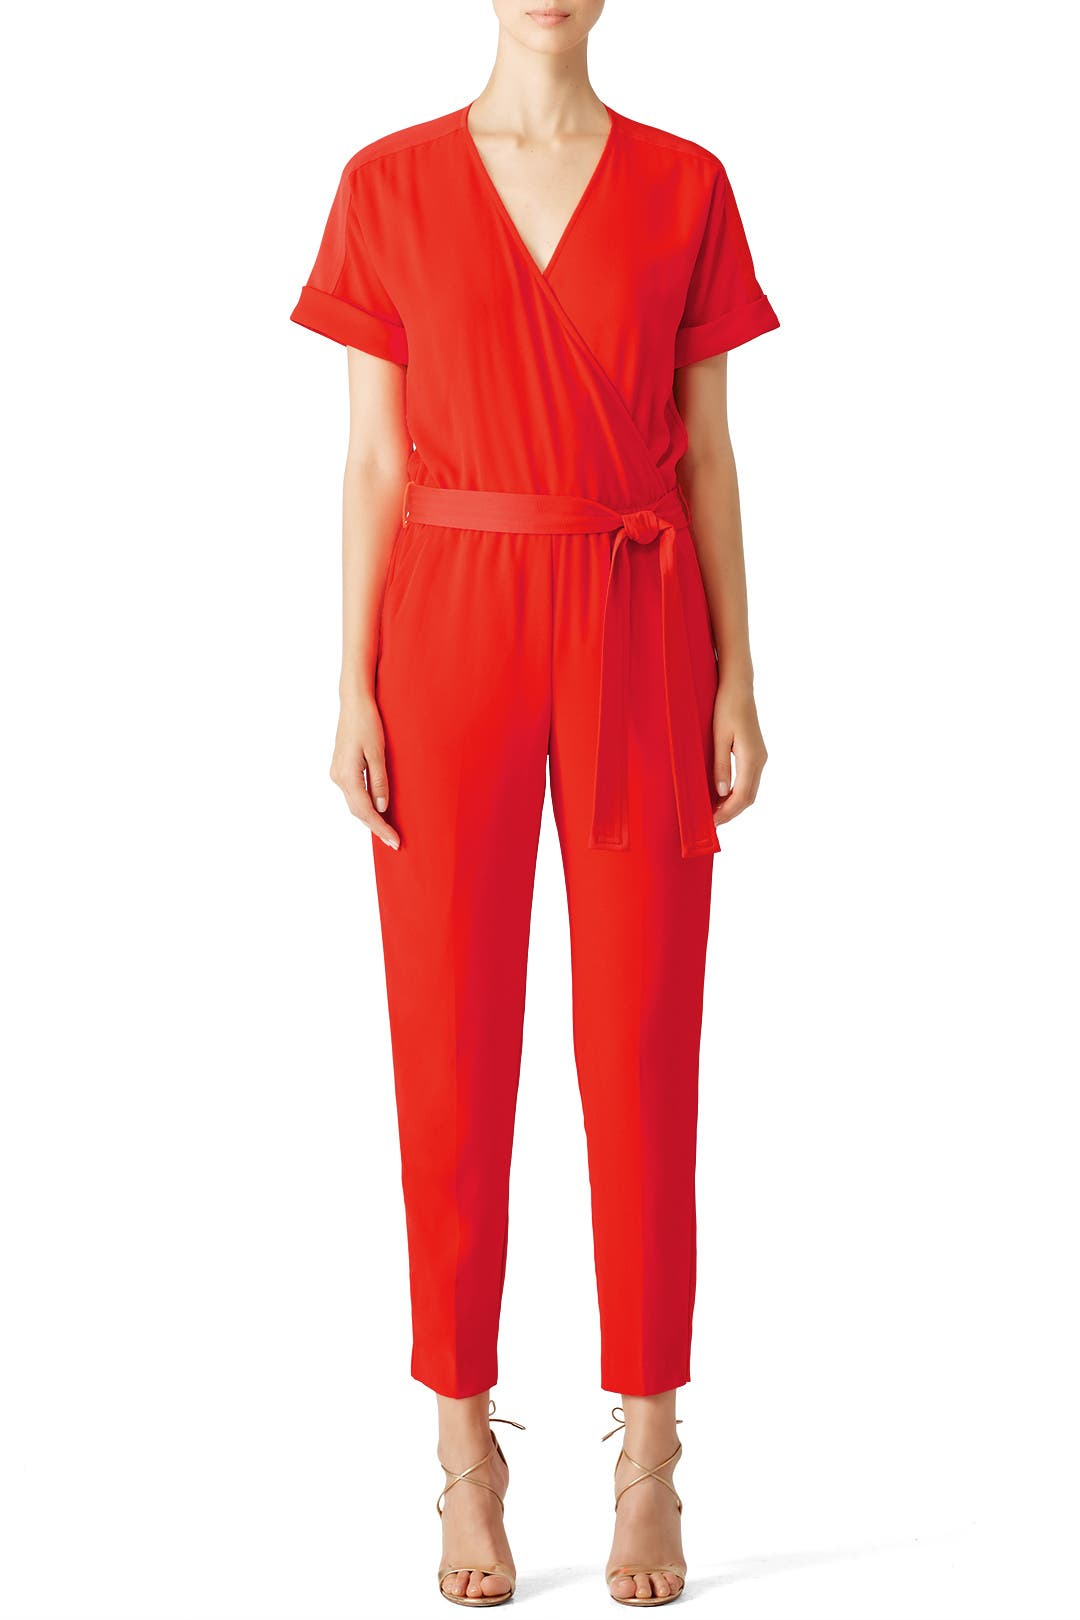 881a11734dd Red Wrap Jumpsuit by Trina Turk for  60